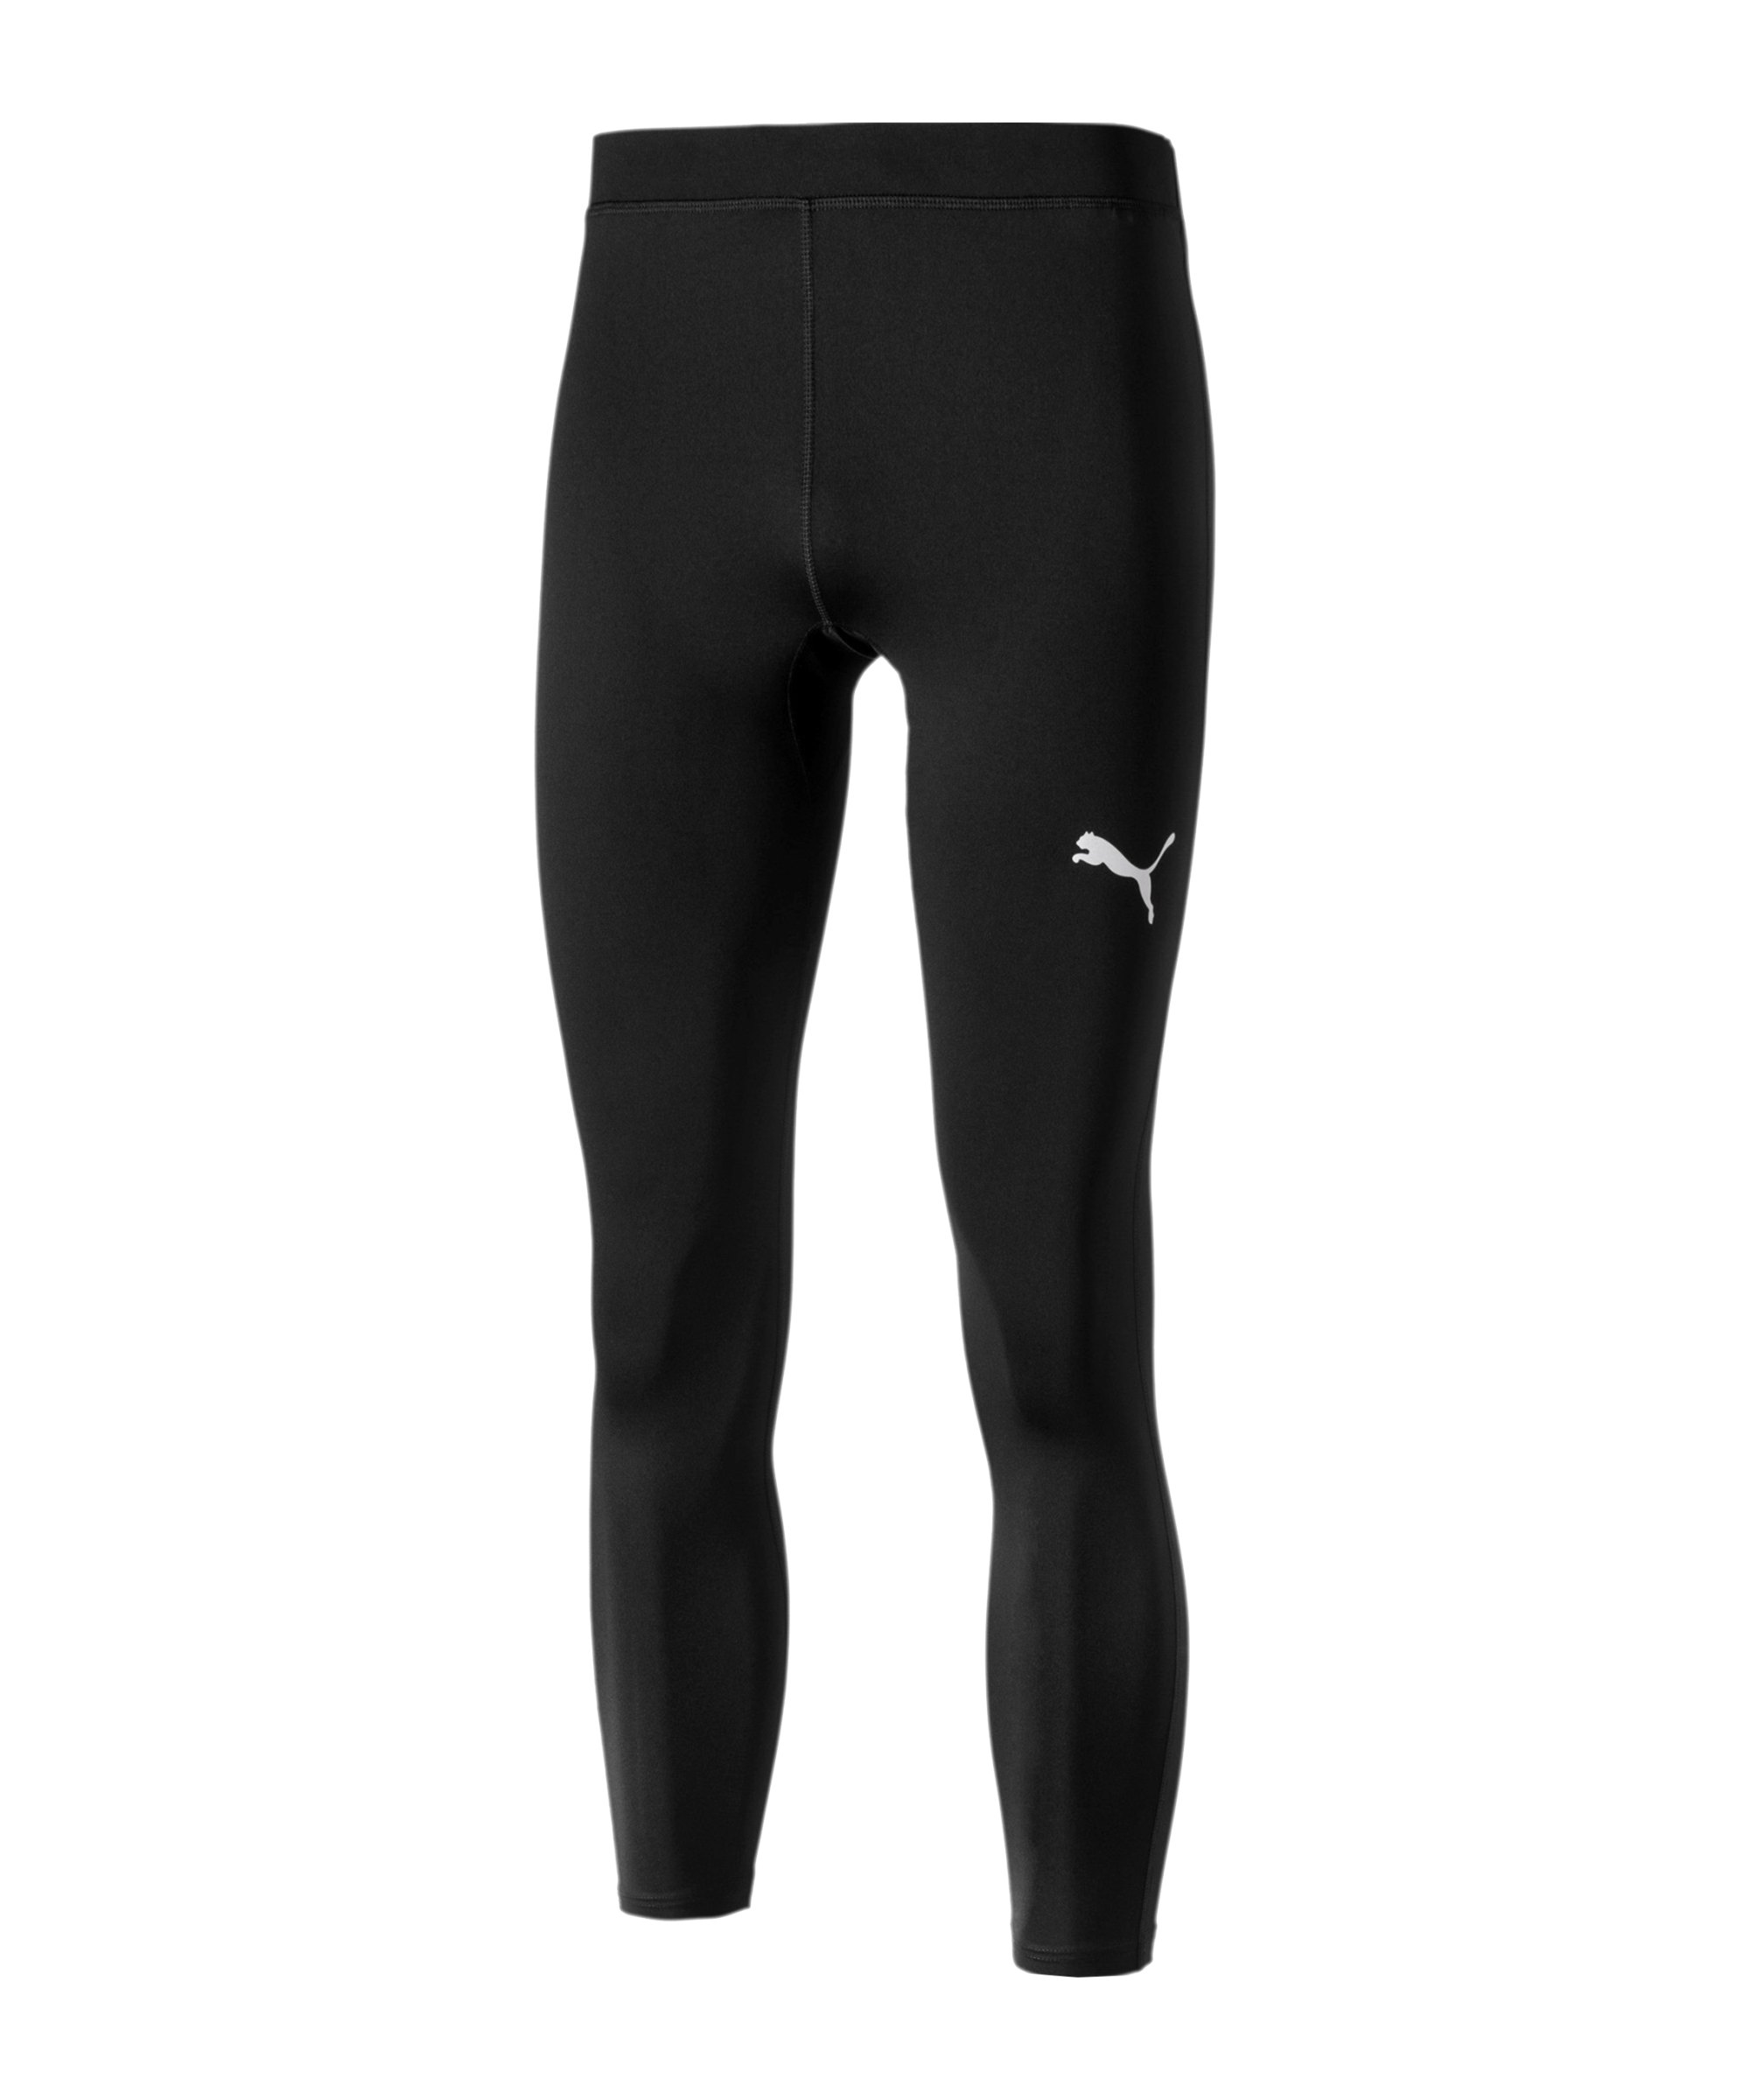 PUMA LIGA Baselayer Tight Schwarz F03 - schwarz